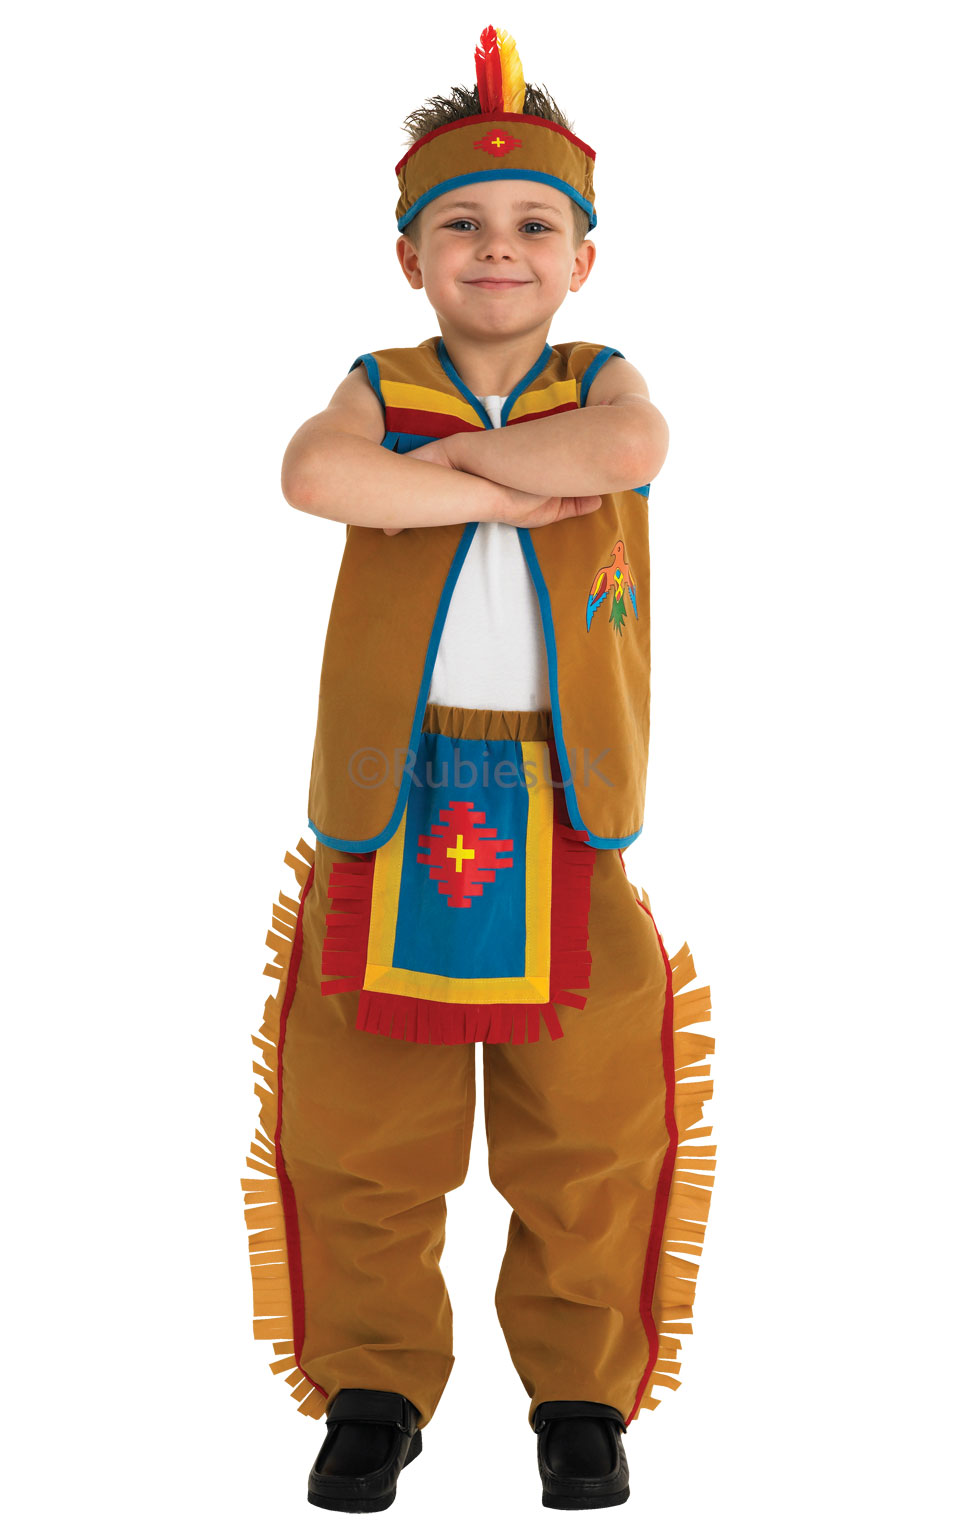 Child Cowboy Costume Book Week Day Boys Wild West Fancy Dress Outfit Kids